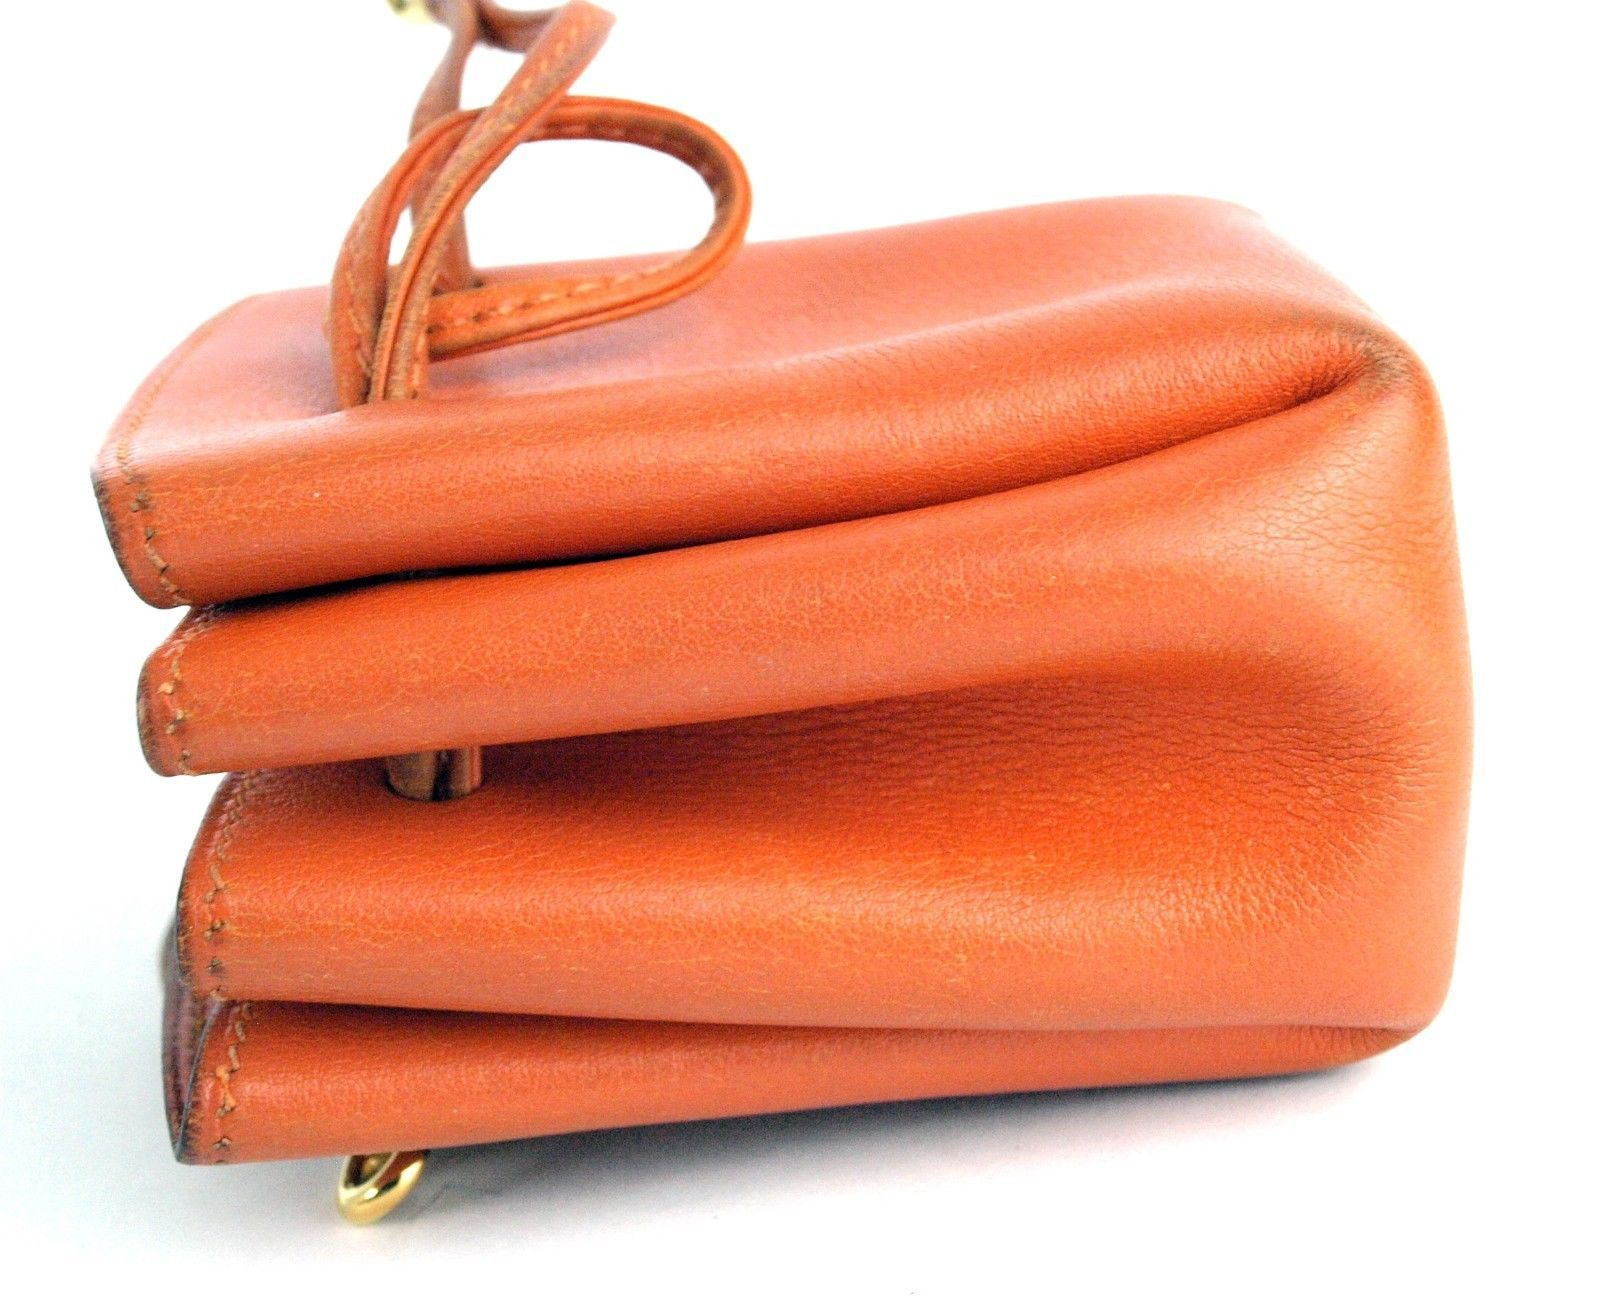 Authentic HERMES Paris Orange Leather Tiny Cosmetic Pouch Wristlet Purse France image 4